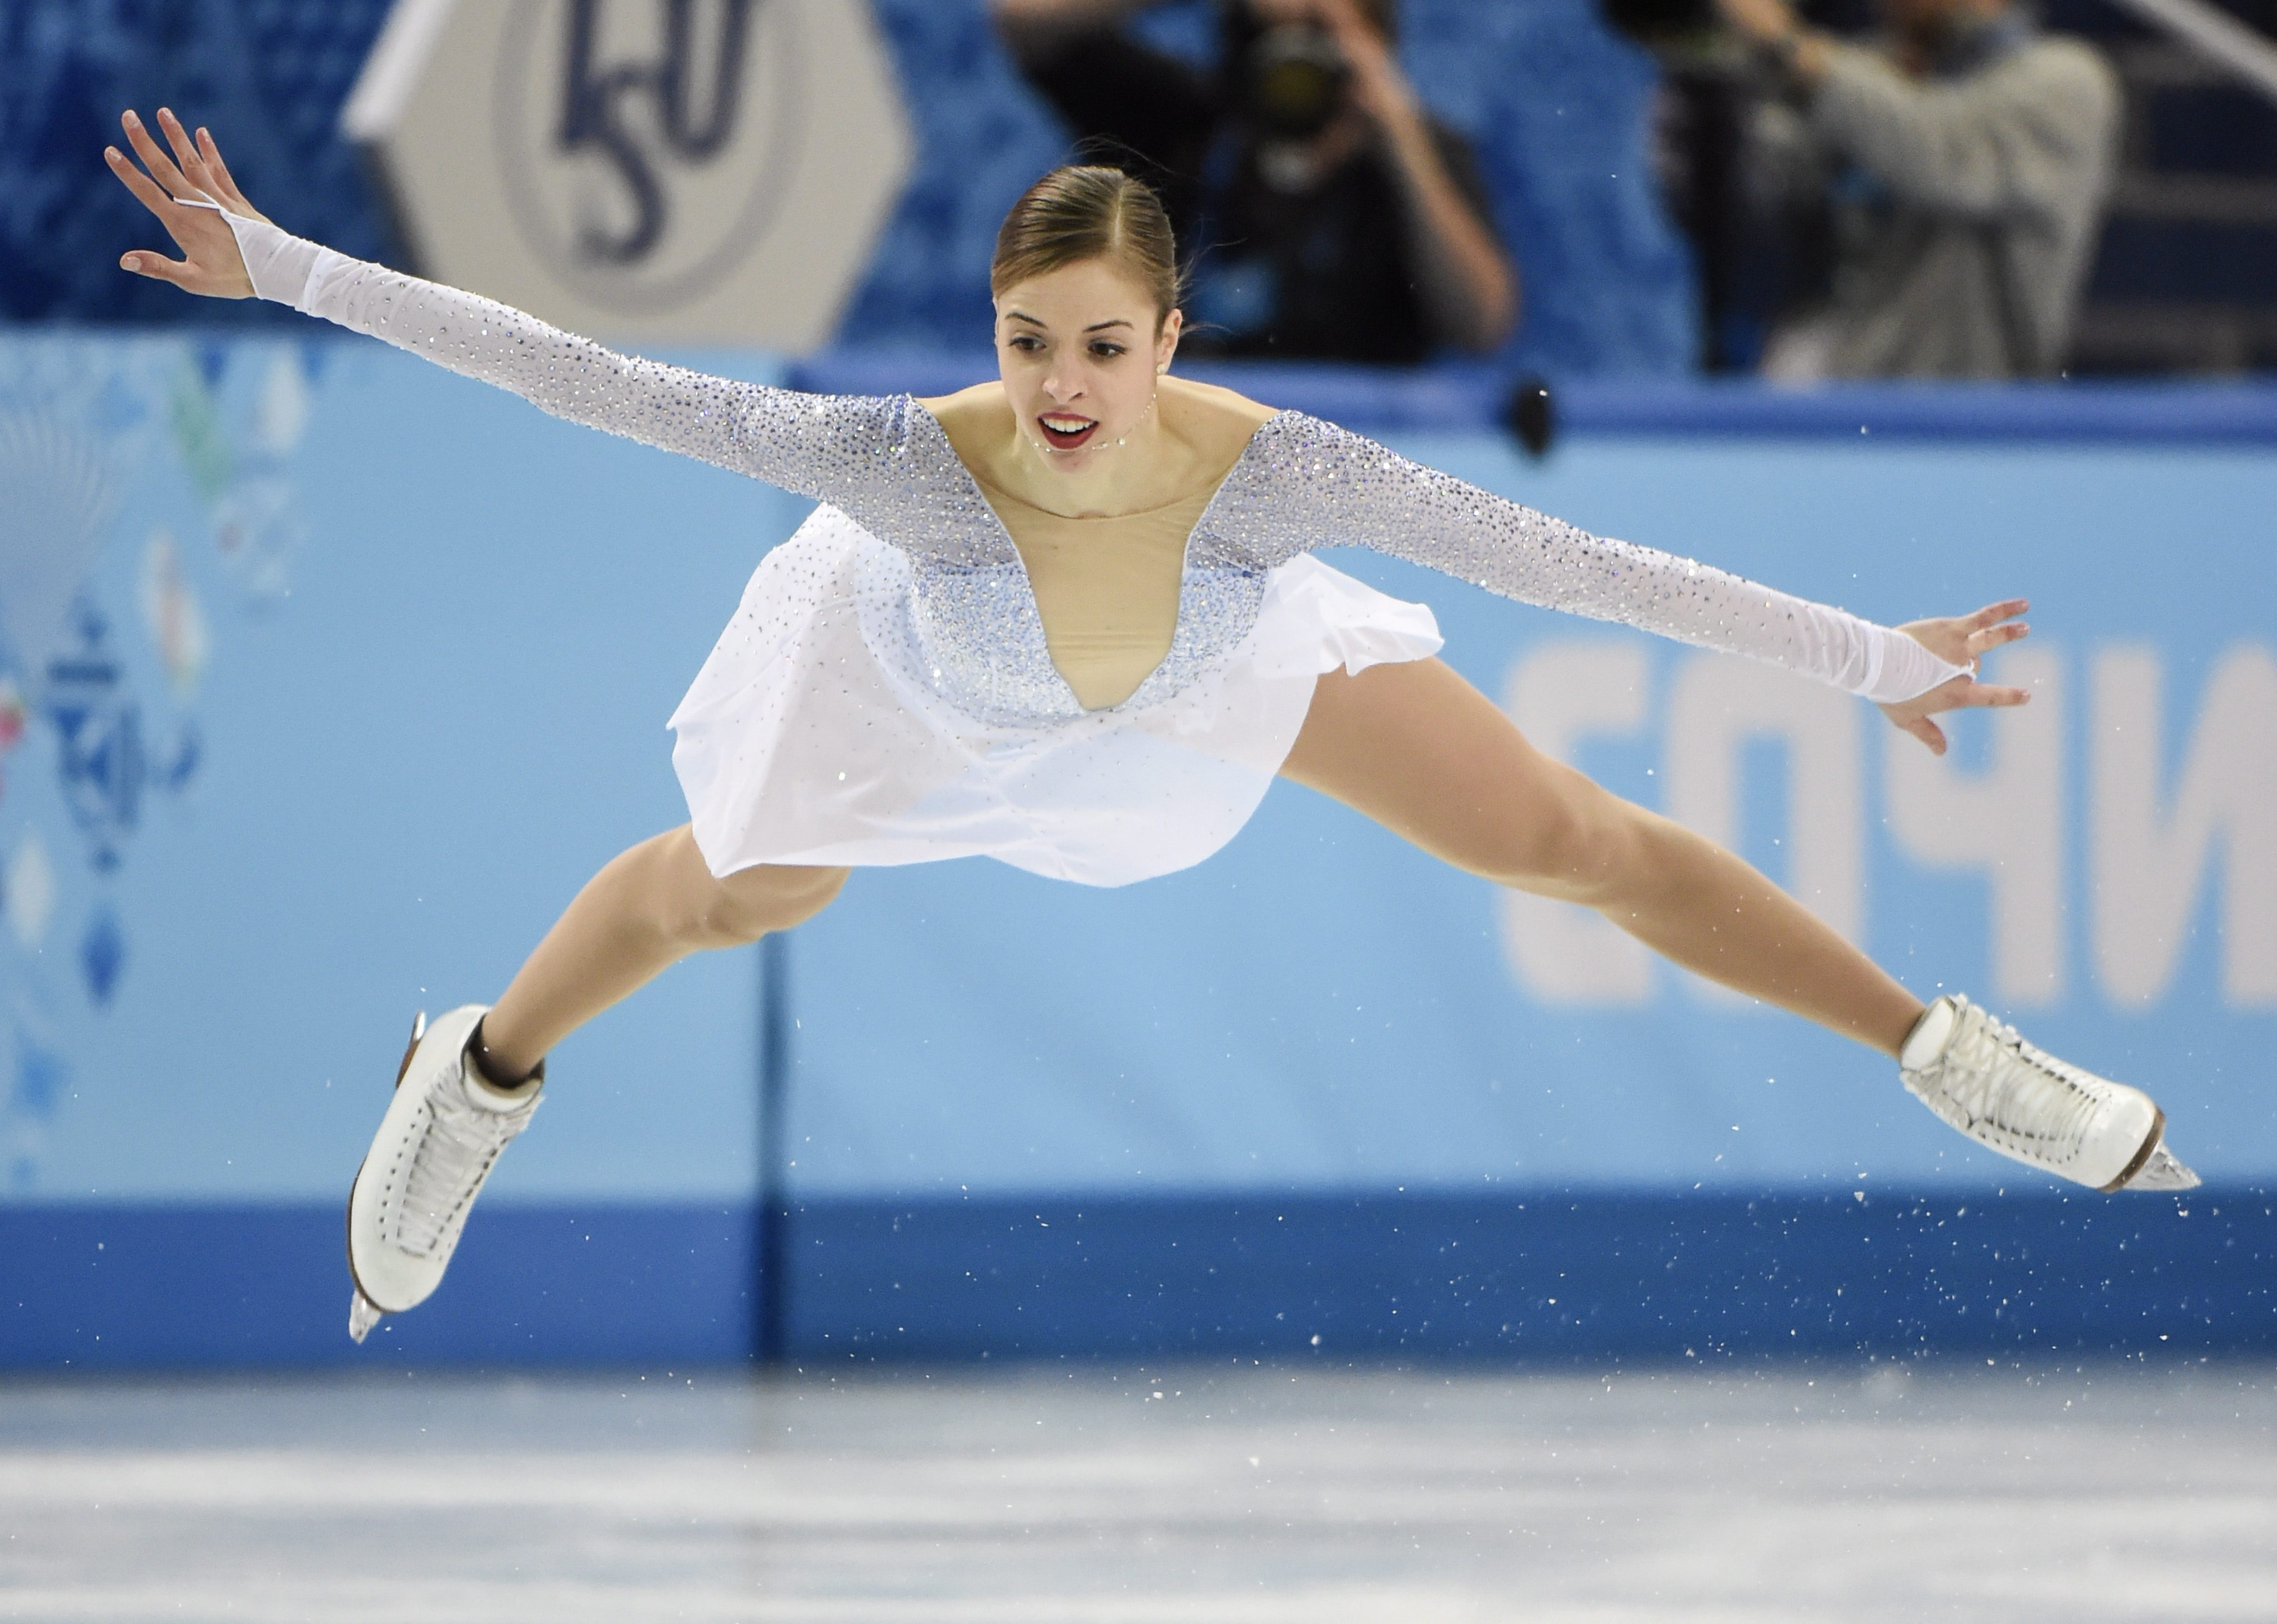 Meryl and charlie skaters dating 7